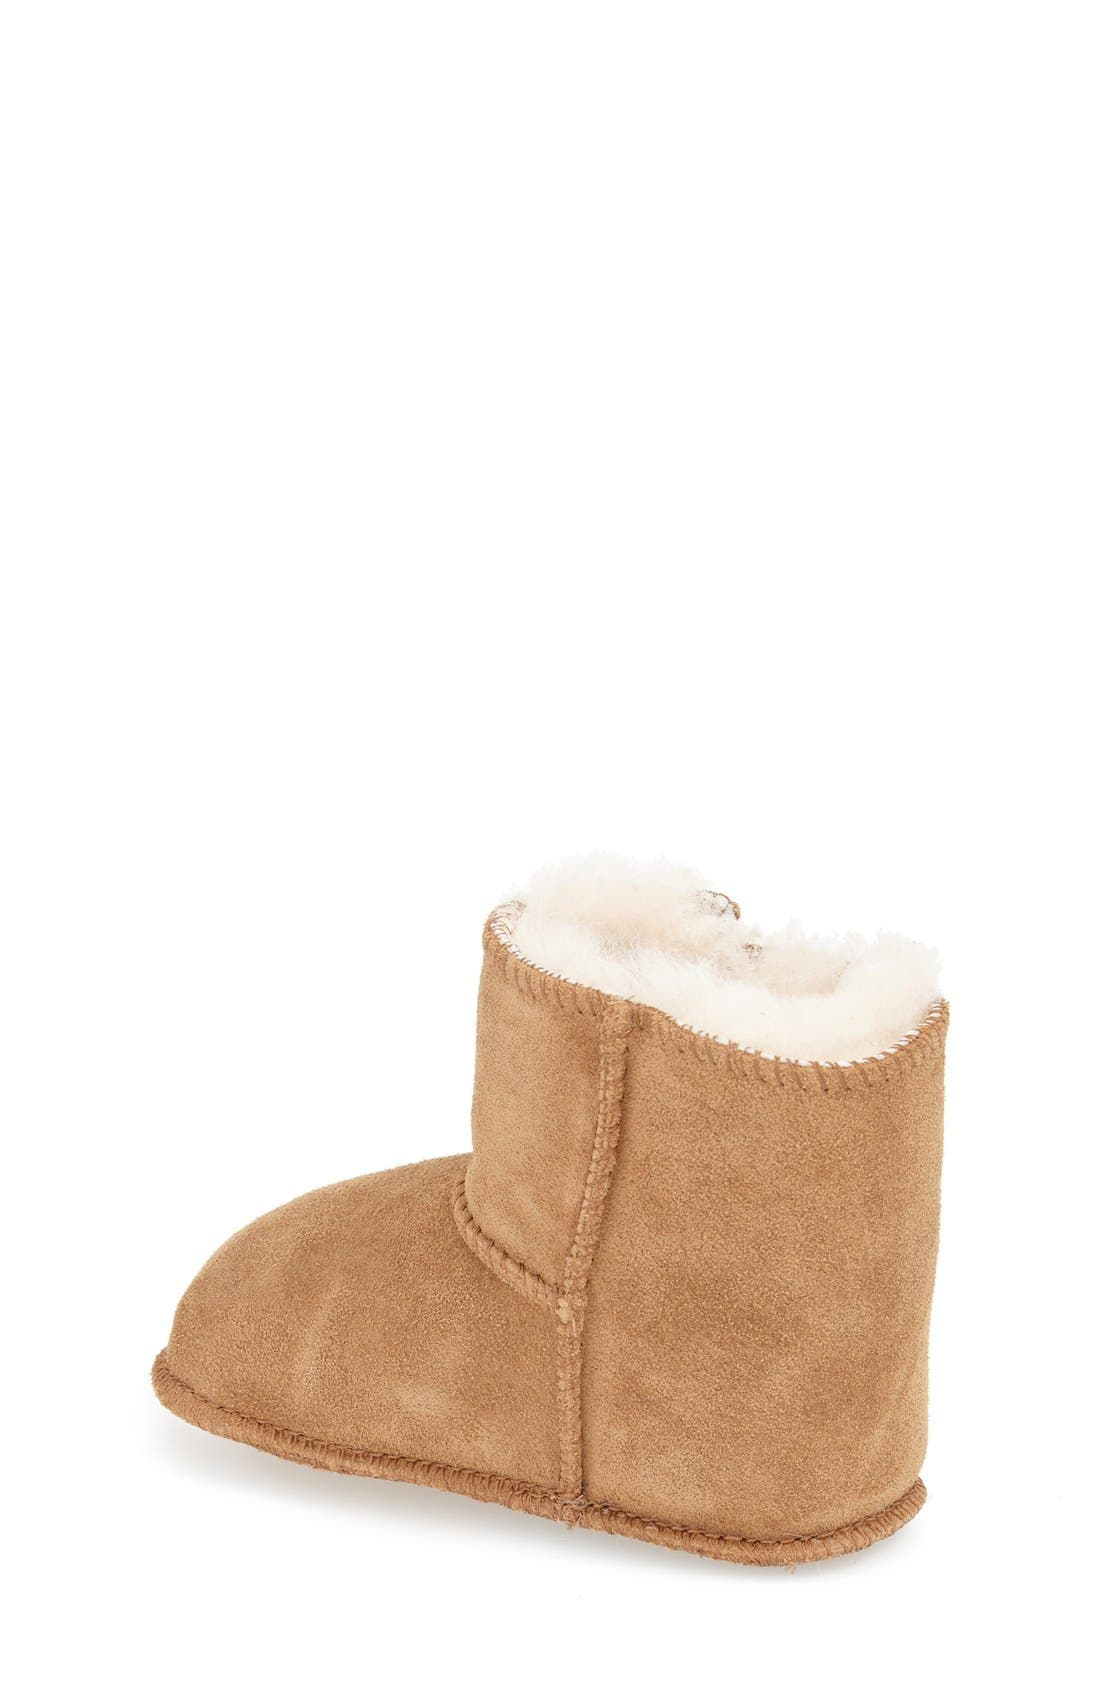 UGG<SUP>®</SUP>, Erin Bootie, Alternate thumbnail 3, color, CHESTNUT